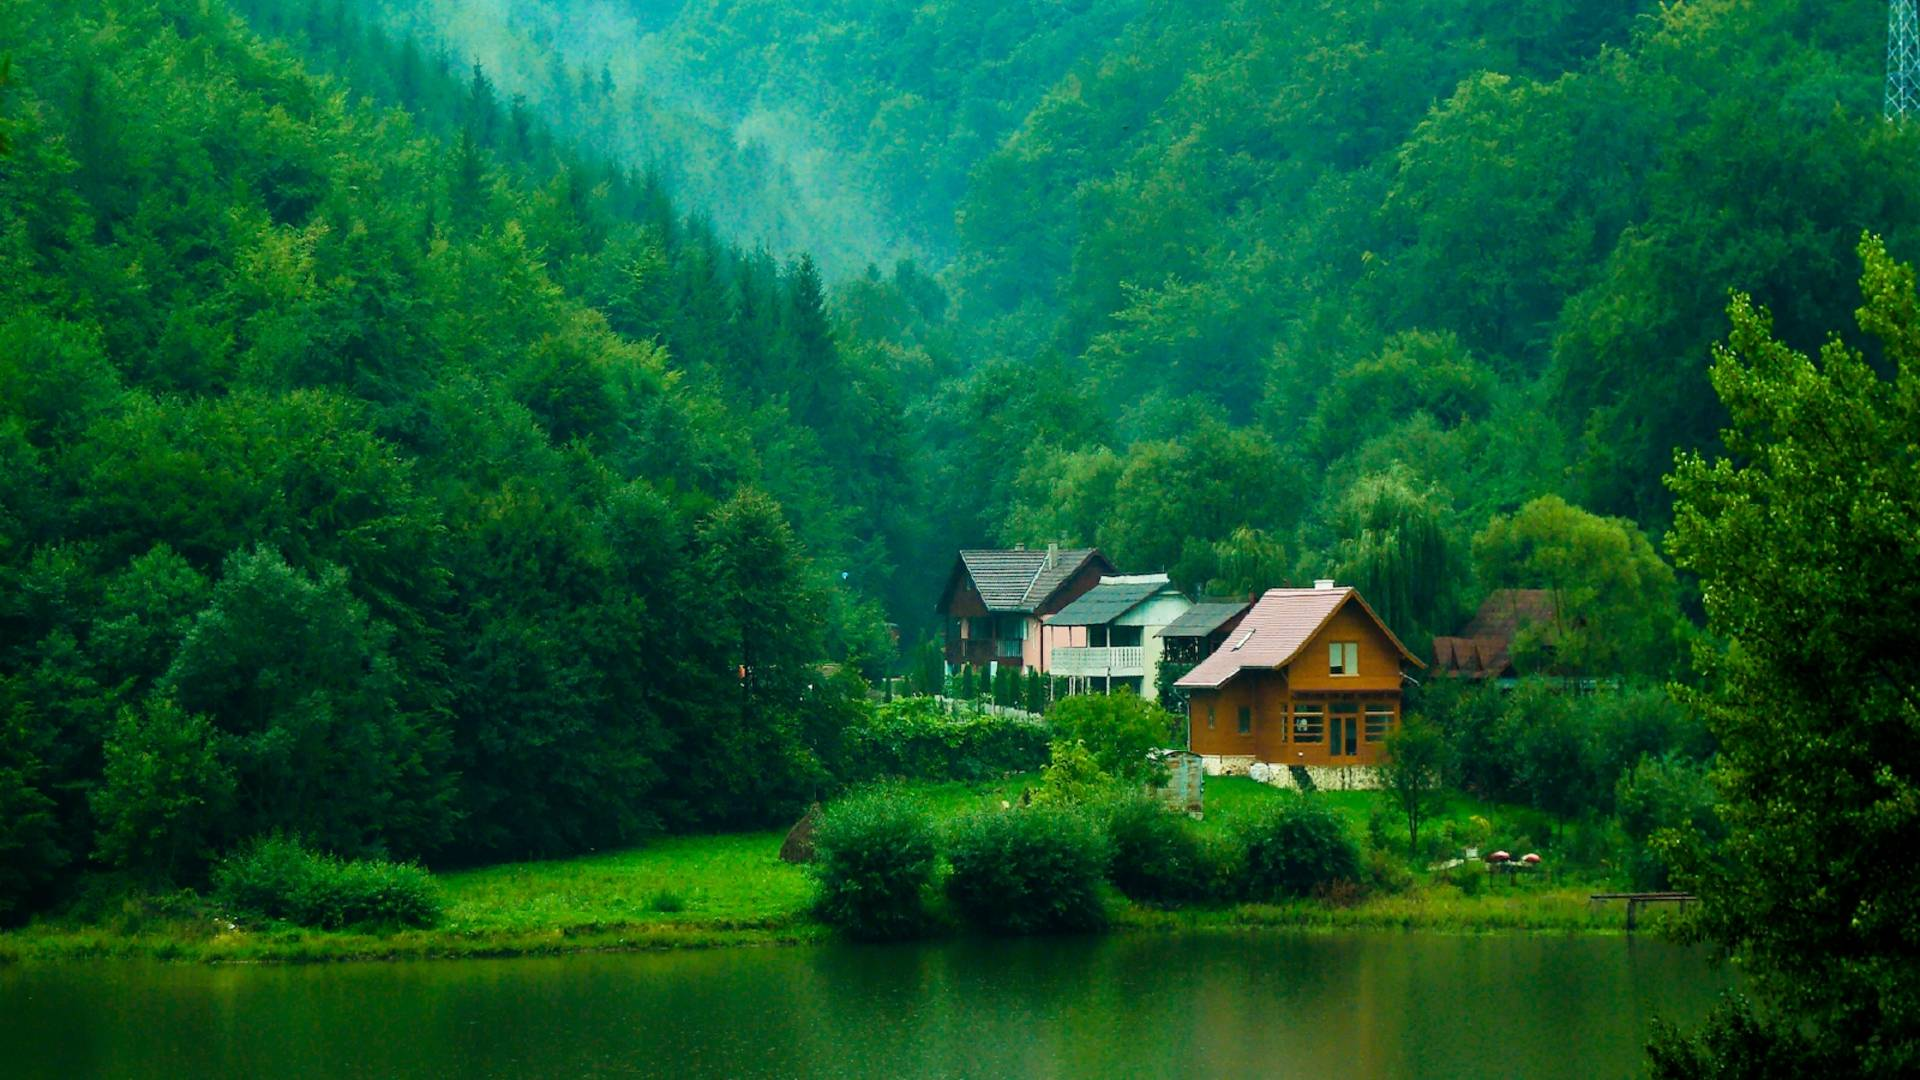 House in the green mountain House in a mountain forest 1920x1080